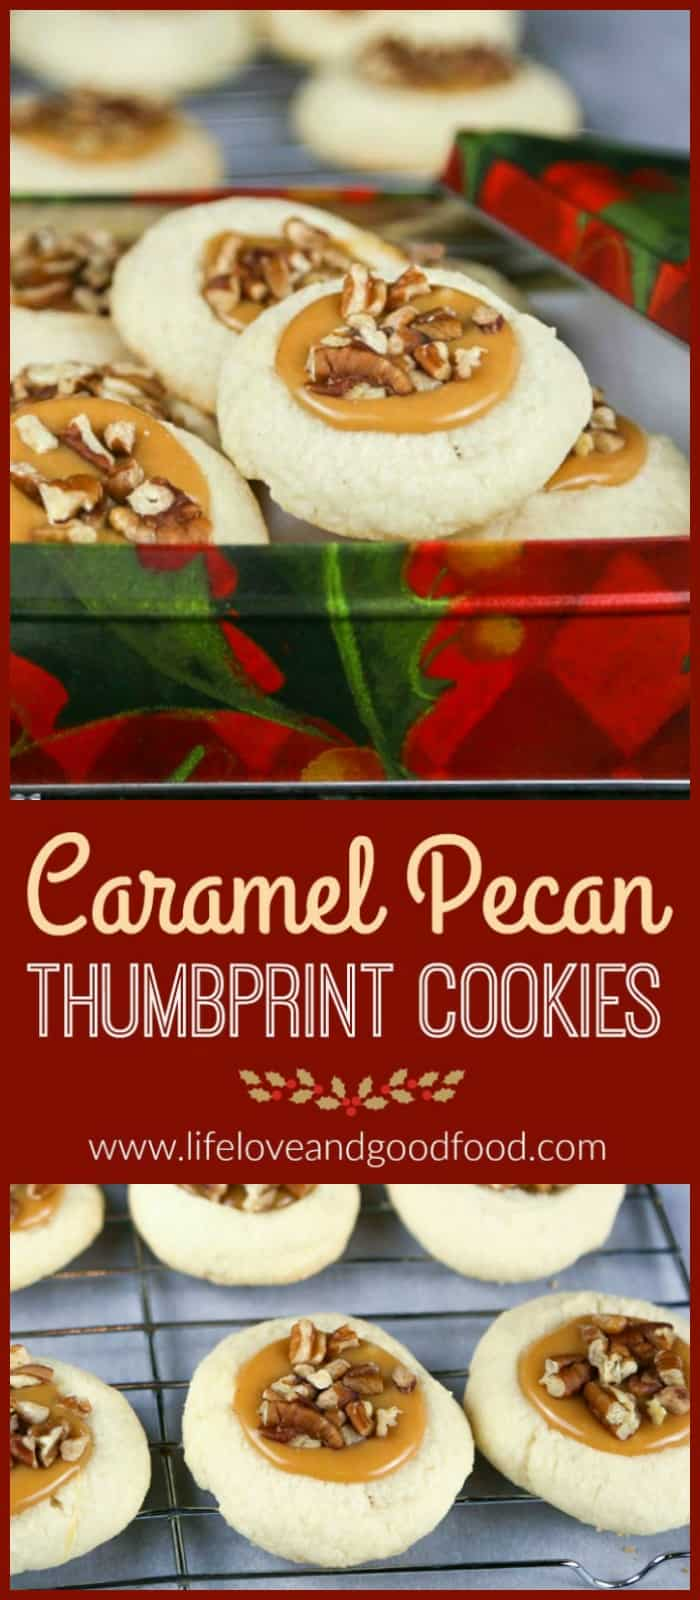 Caramel Pecan Thumbprint Cookies—buttery shortbread with a creamy caramel center topped with toasted pecans #cookies #thumbprintcookies